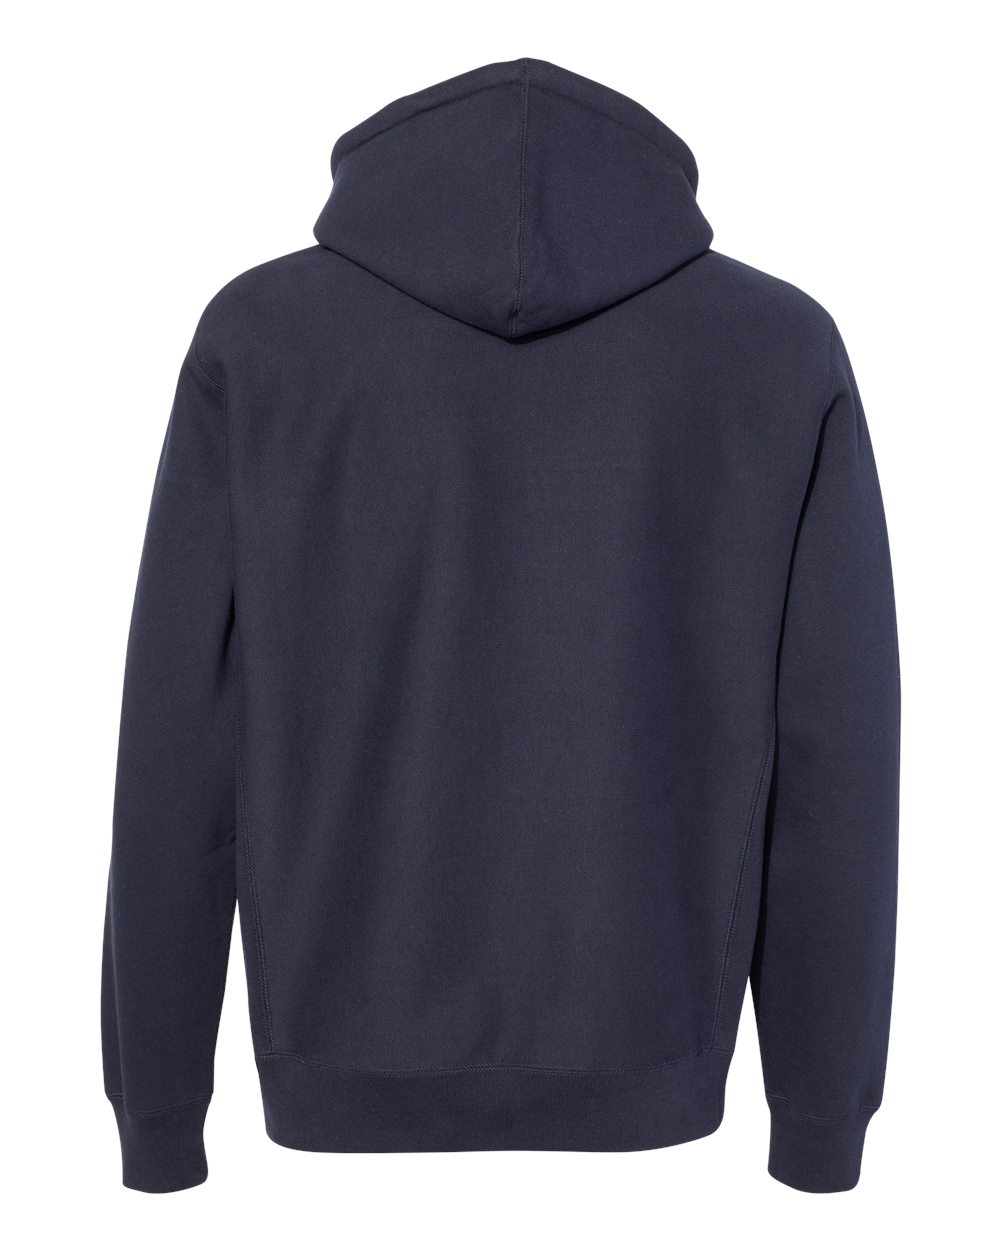 Independent-Trading-Co-Mens-Premium-Heavyweight-Cross-Grain-Hoodie-IND5000P thumbnail 16